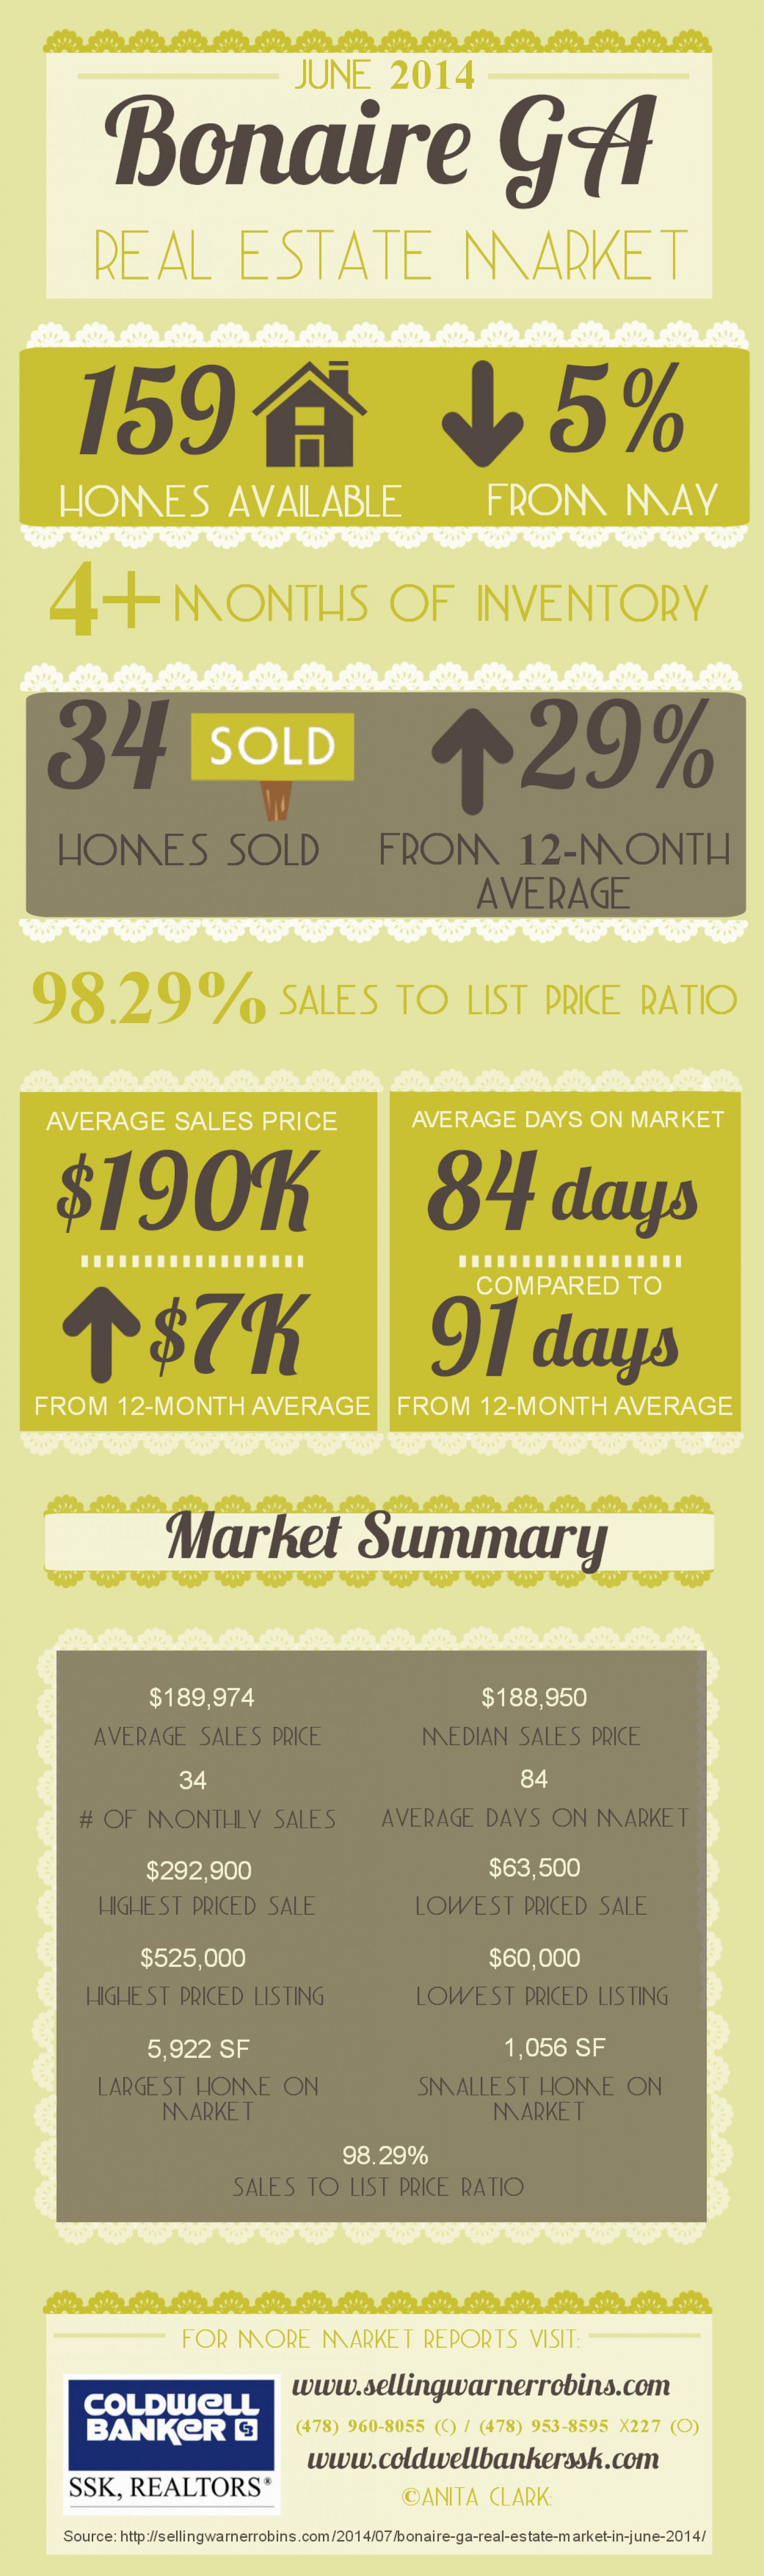 Bonaire GA Real Estate Market in June 2014 Infographic